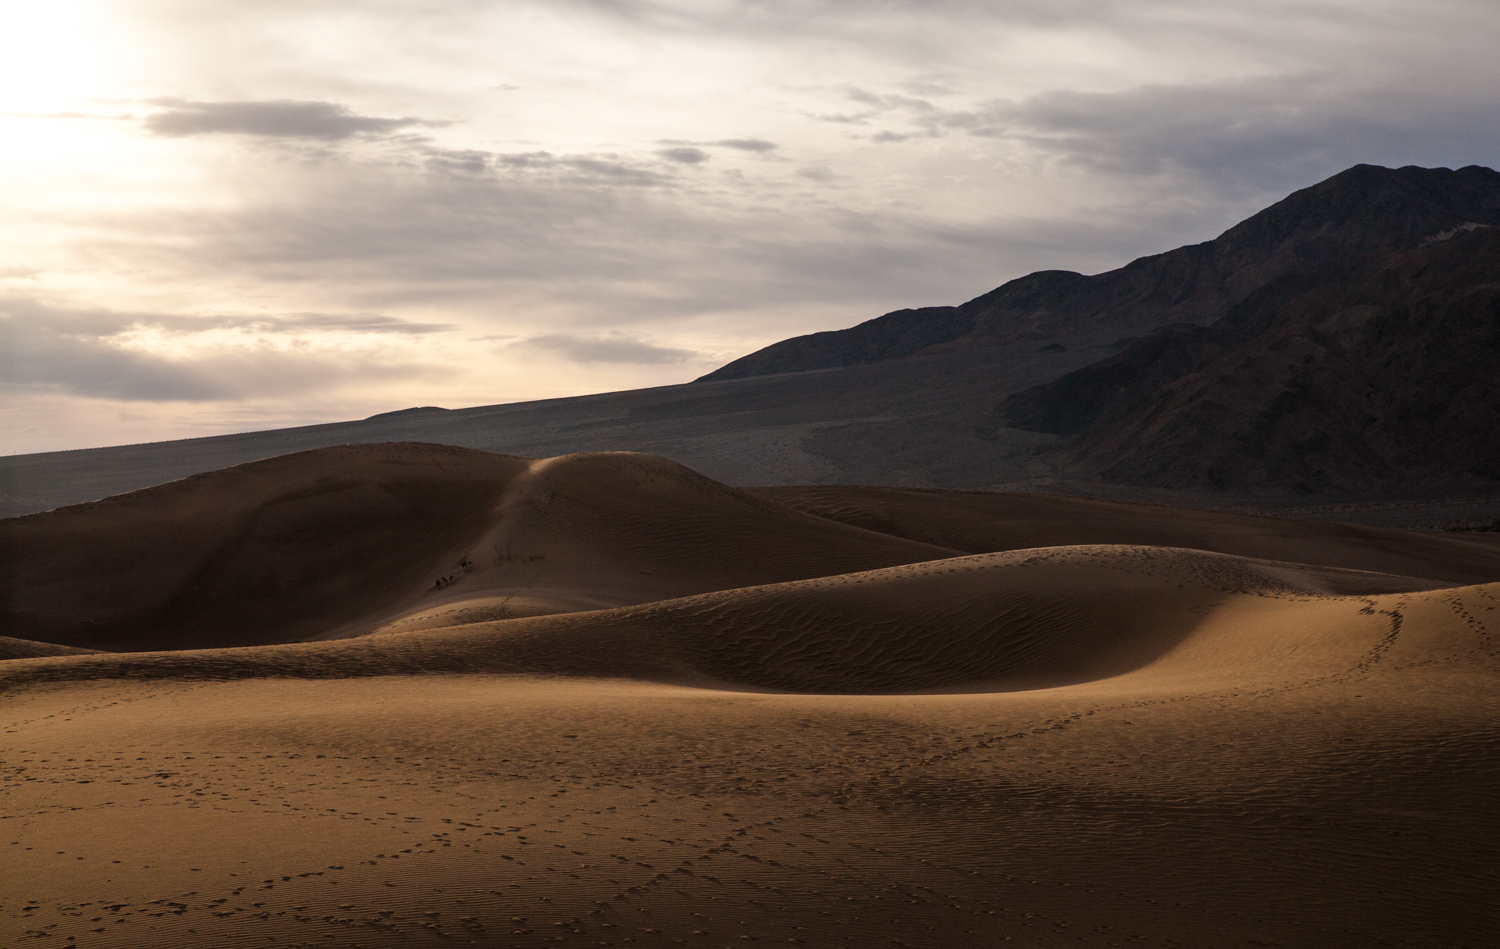 Helynn_Ospina_Travel_Death_Valley_California_01648-29.jpg